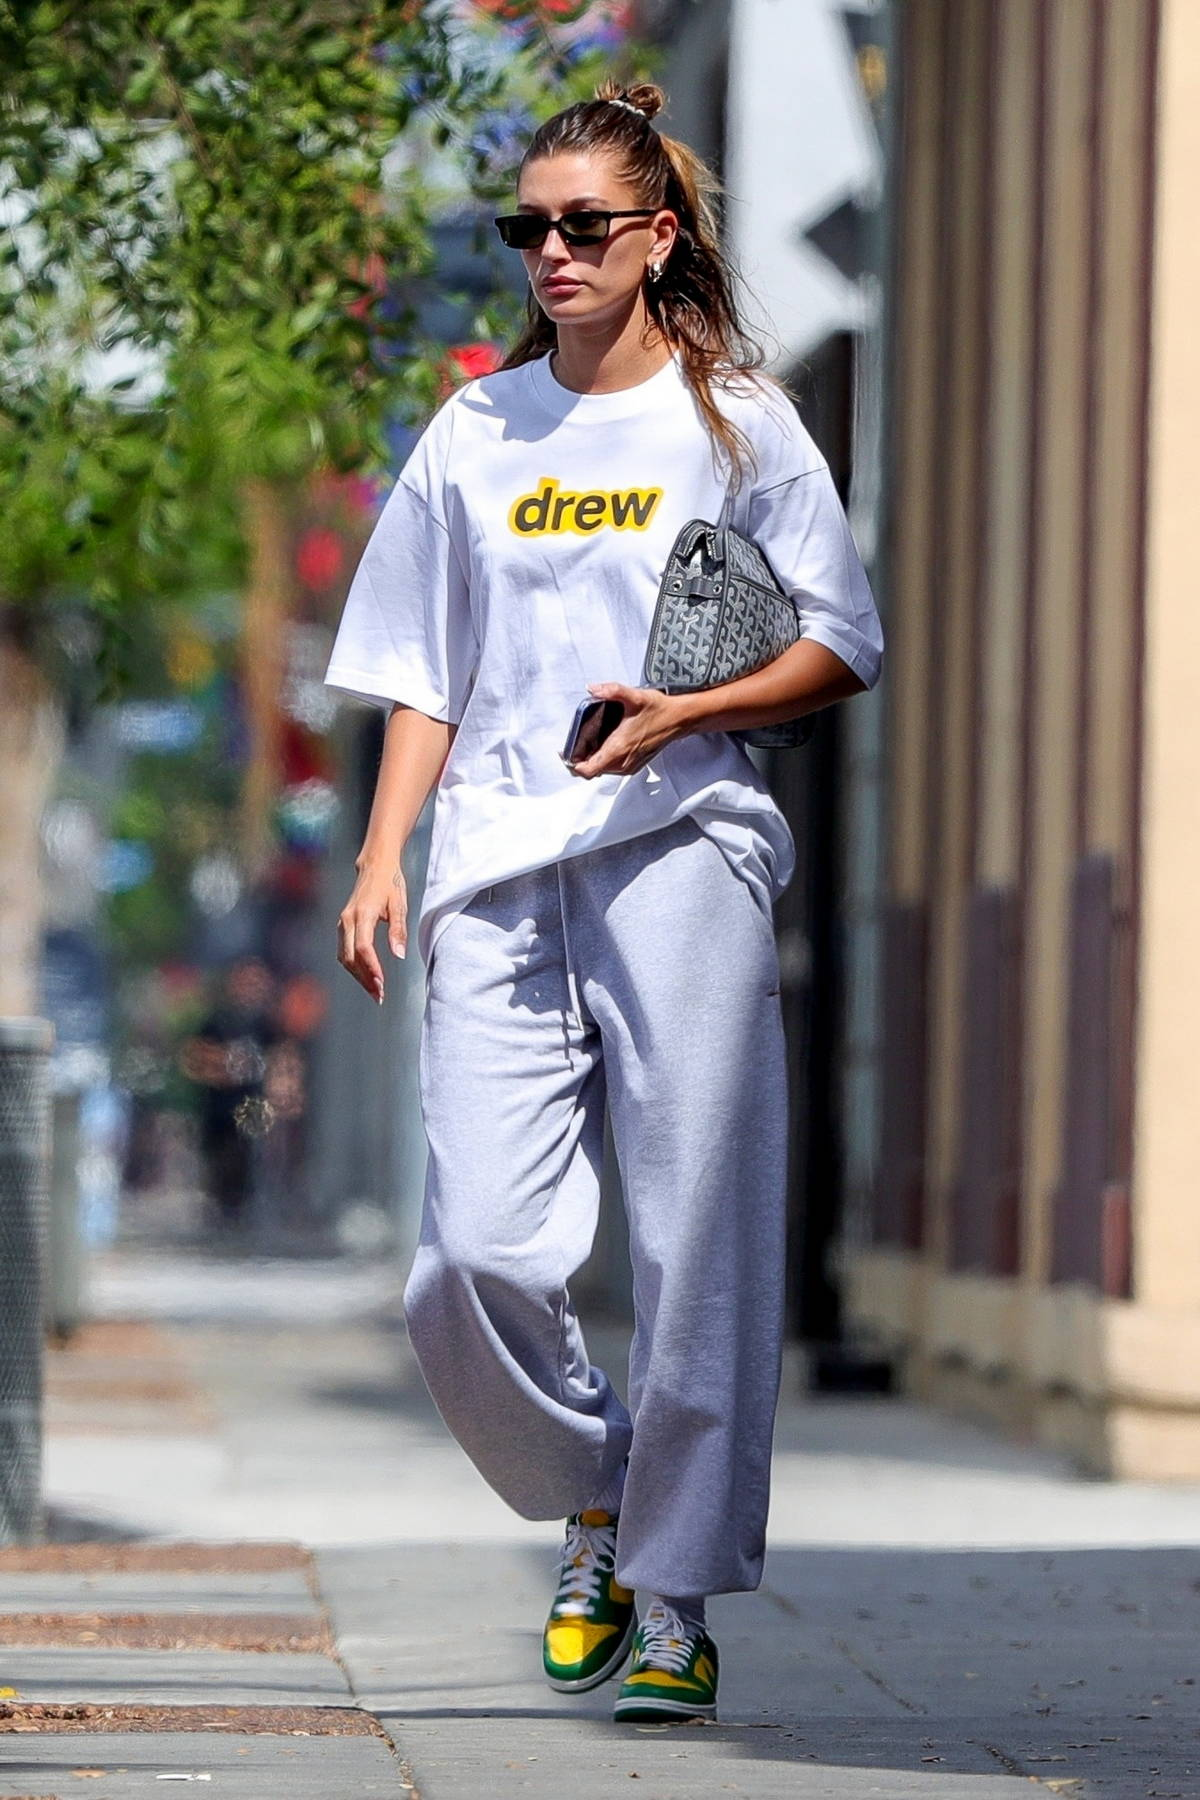 Hailey Bieber dons comfy grey sweats and colored Nike sneakers while leaving Voda Spa in West Hollywood, California